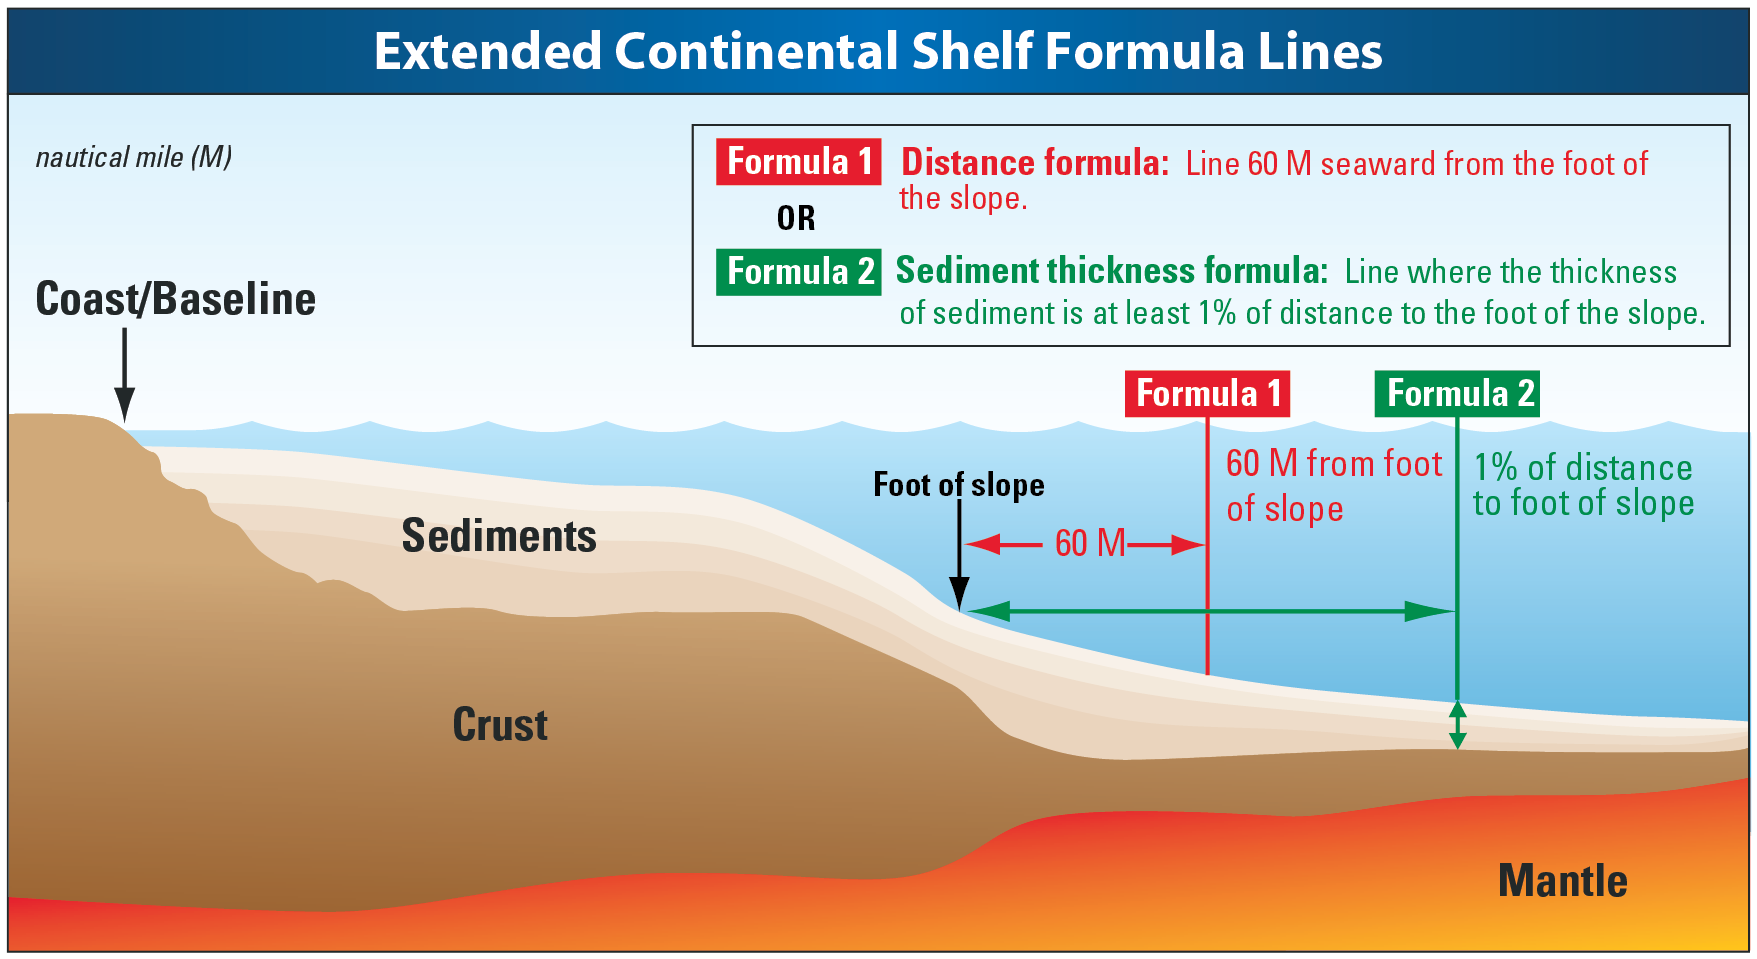 a coastal State can use the 60 M formula or the sediment thickness formula to determine the outer edge of its continental margin